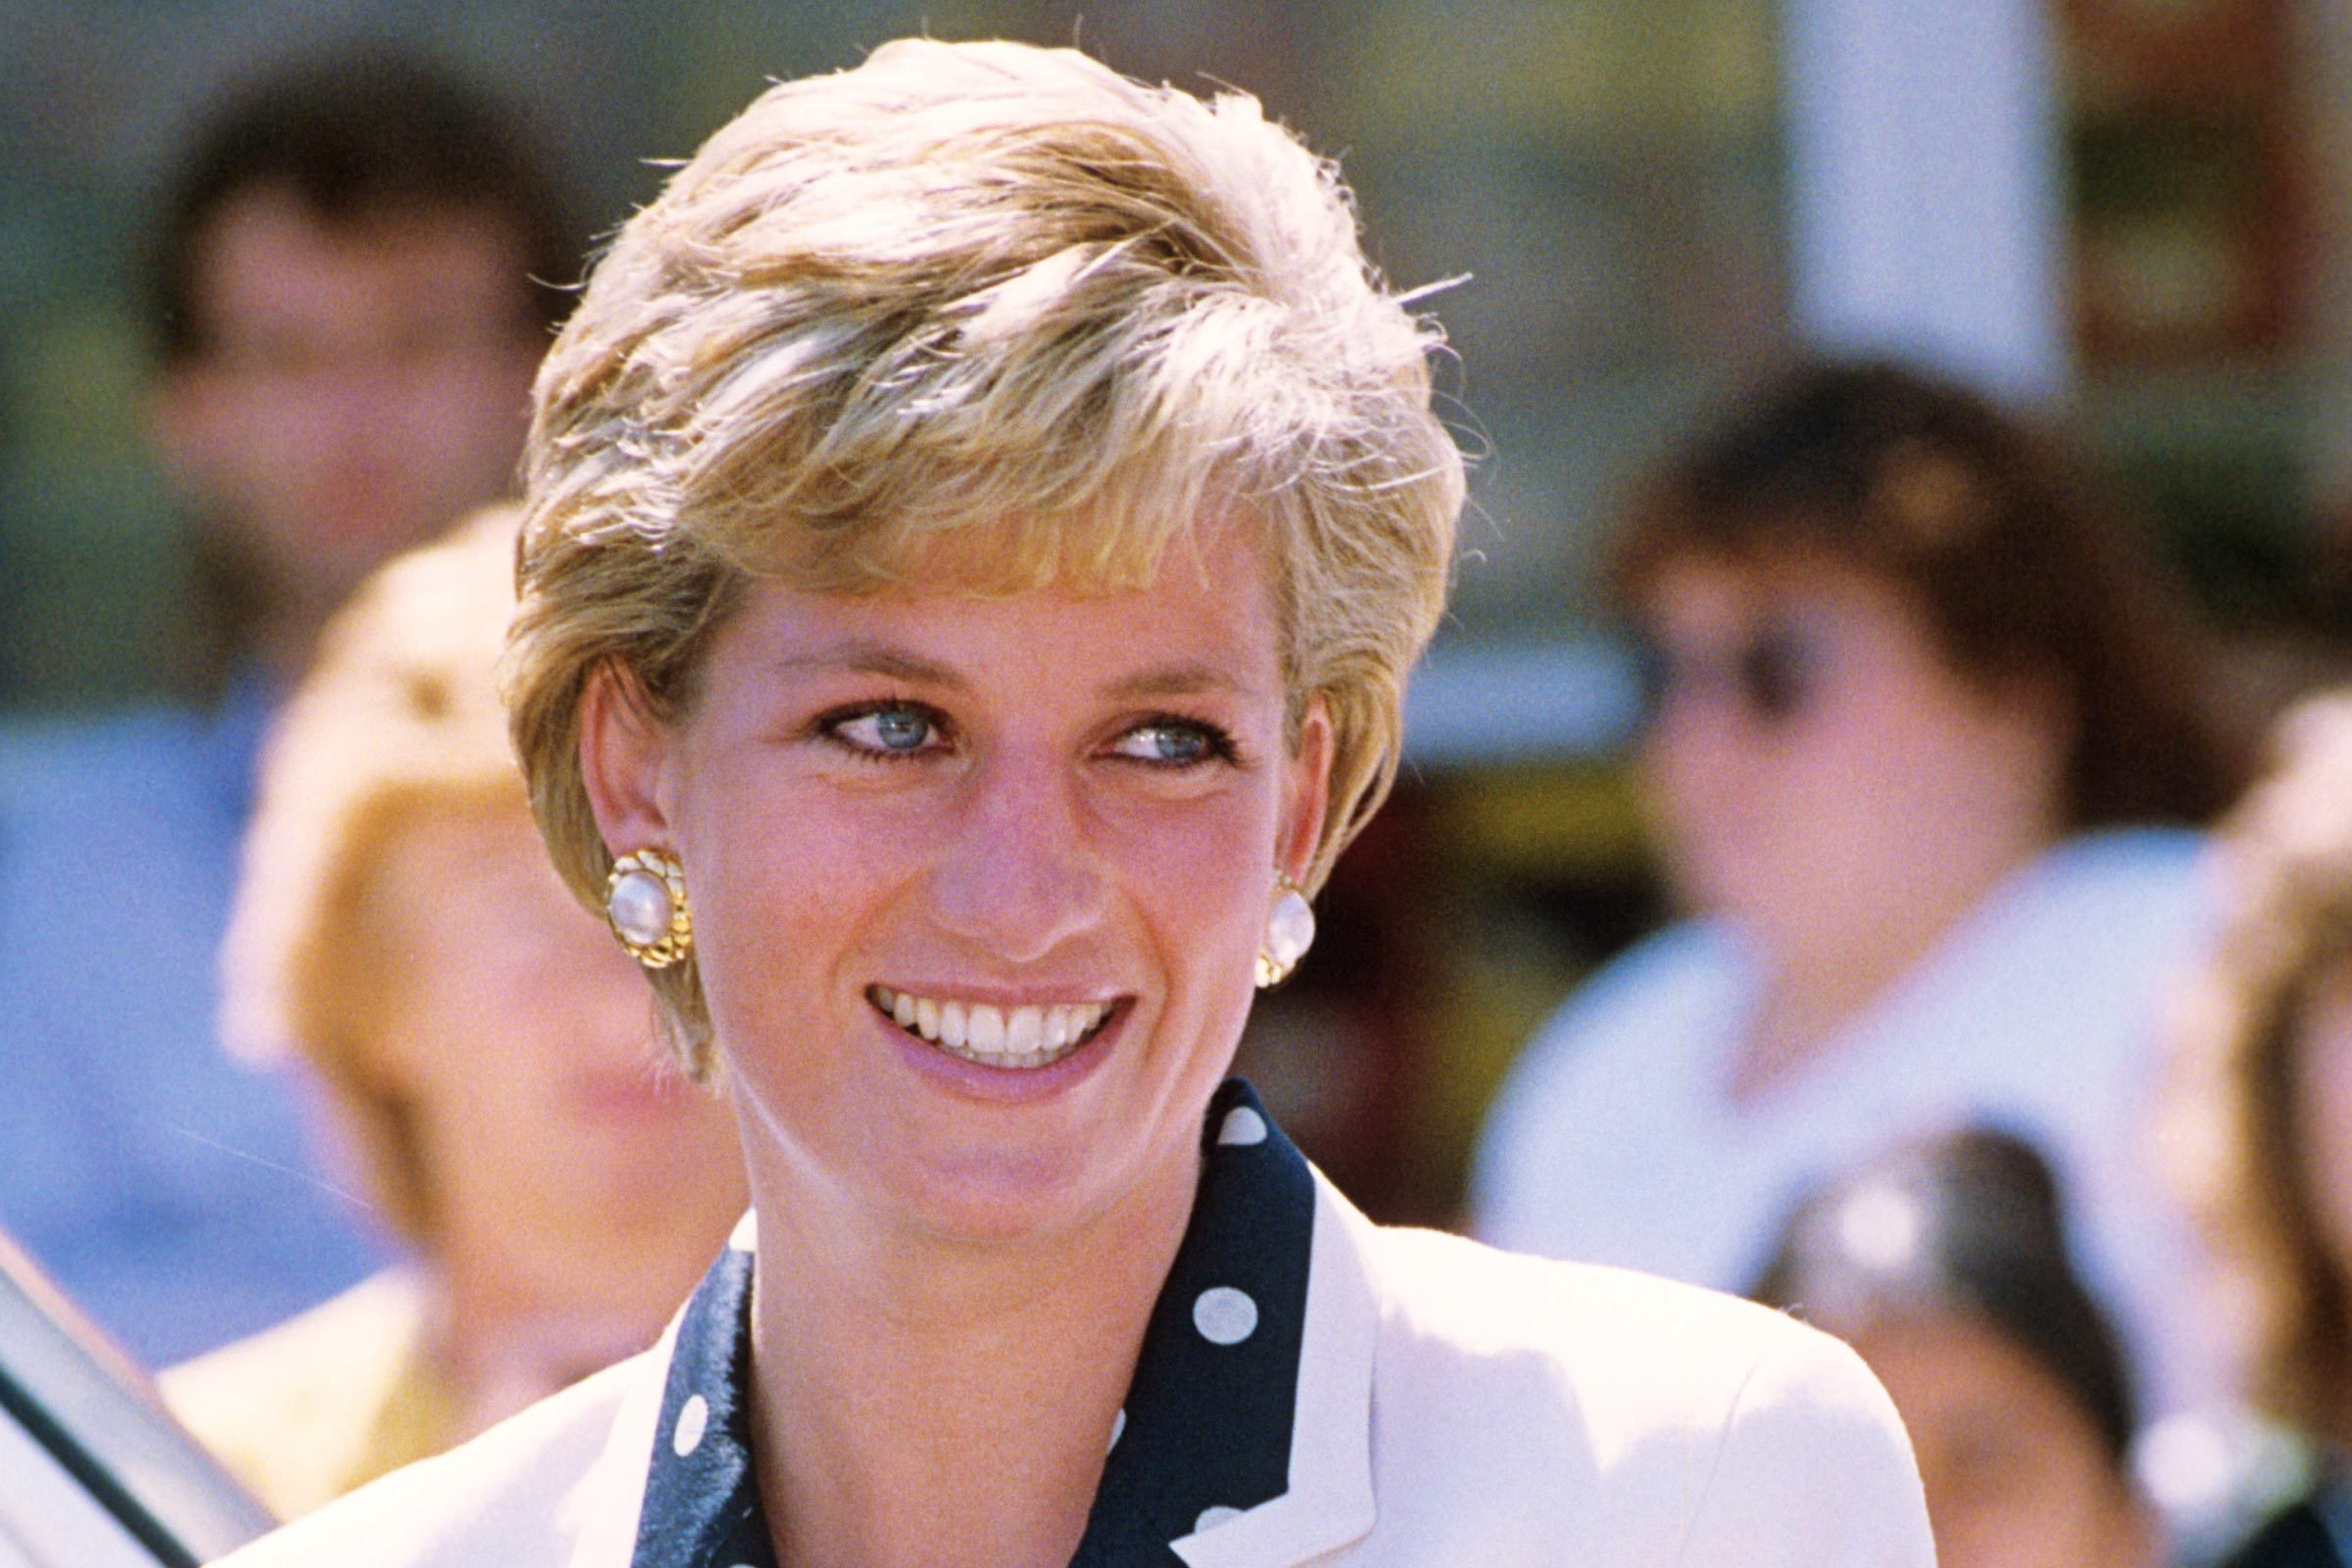 The Full Story Behind Princess Diana's Iconic Haircut